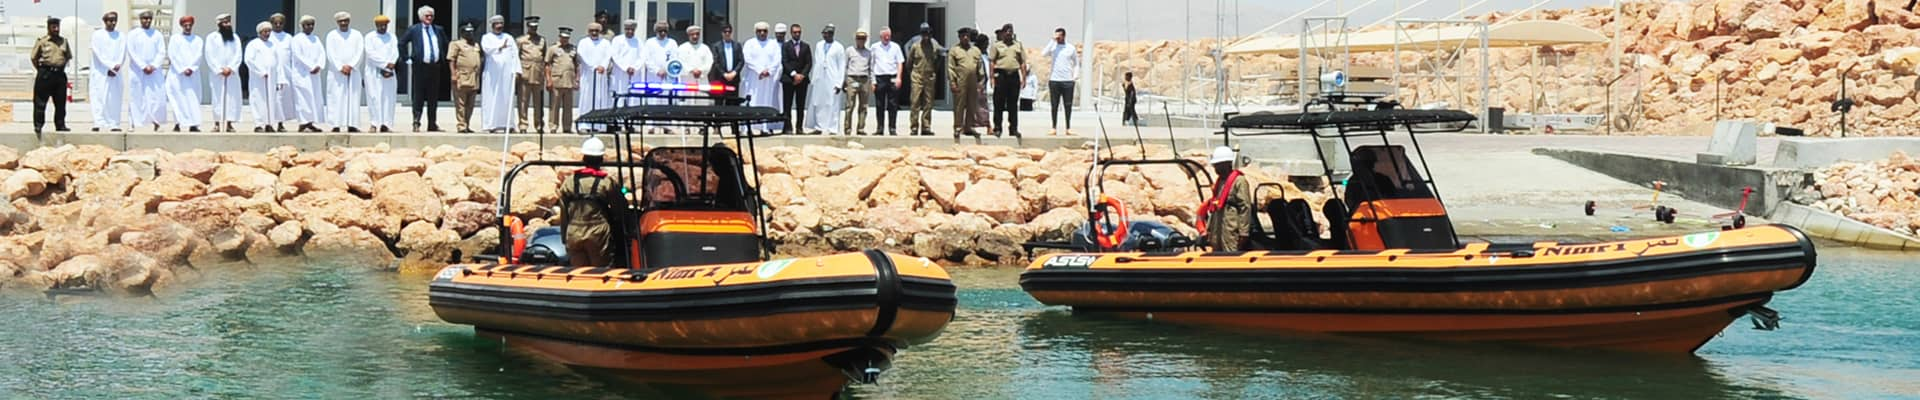 oil-gas-rigid-inflatable-boats